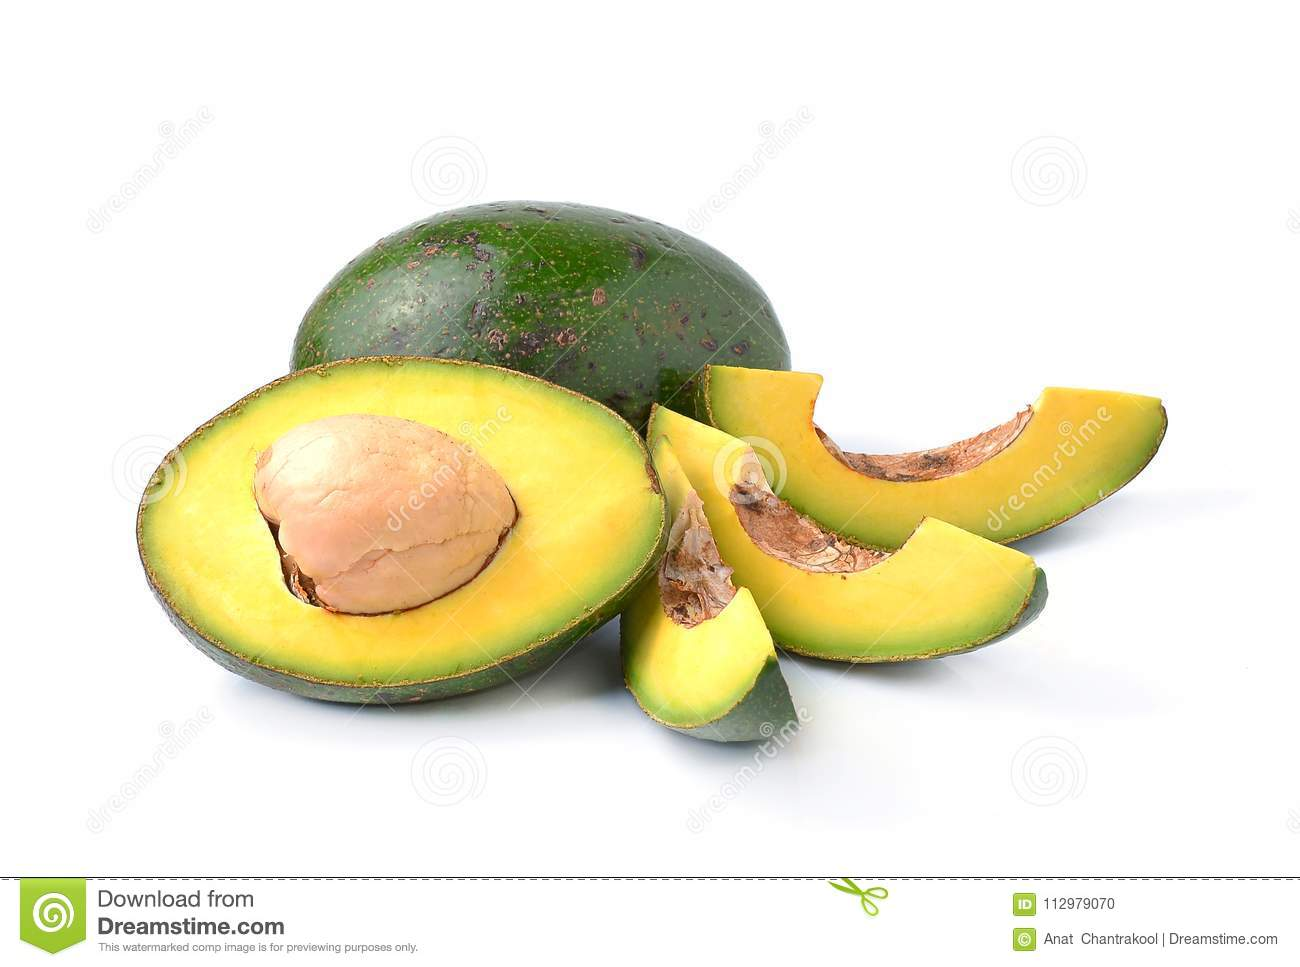 Avocados on a white background